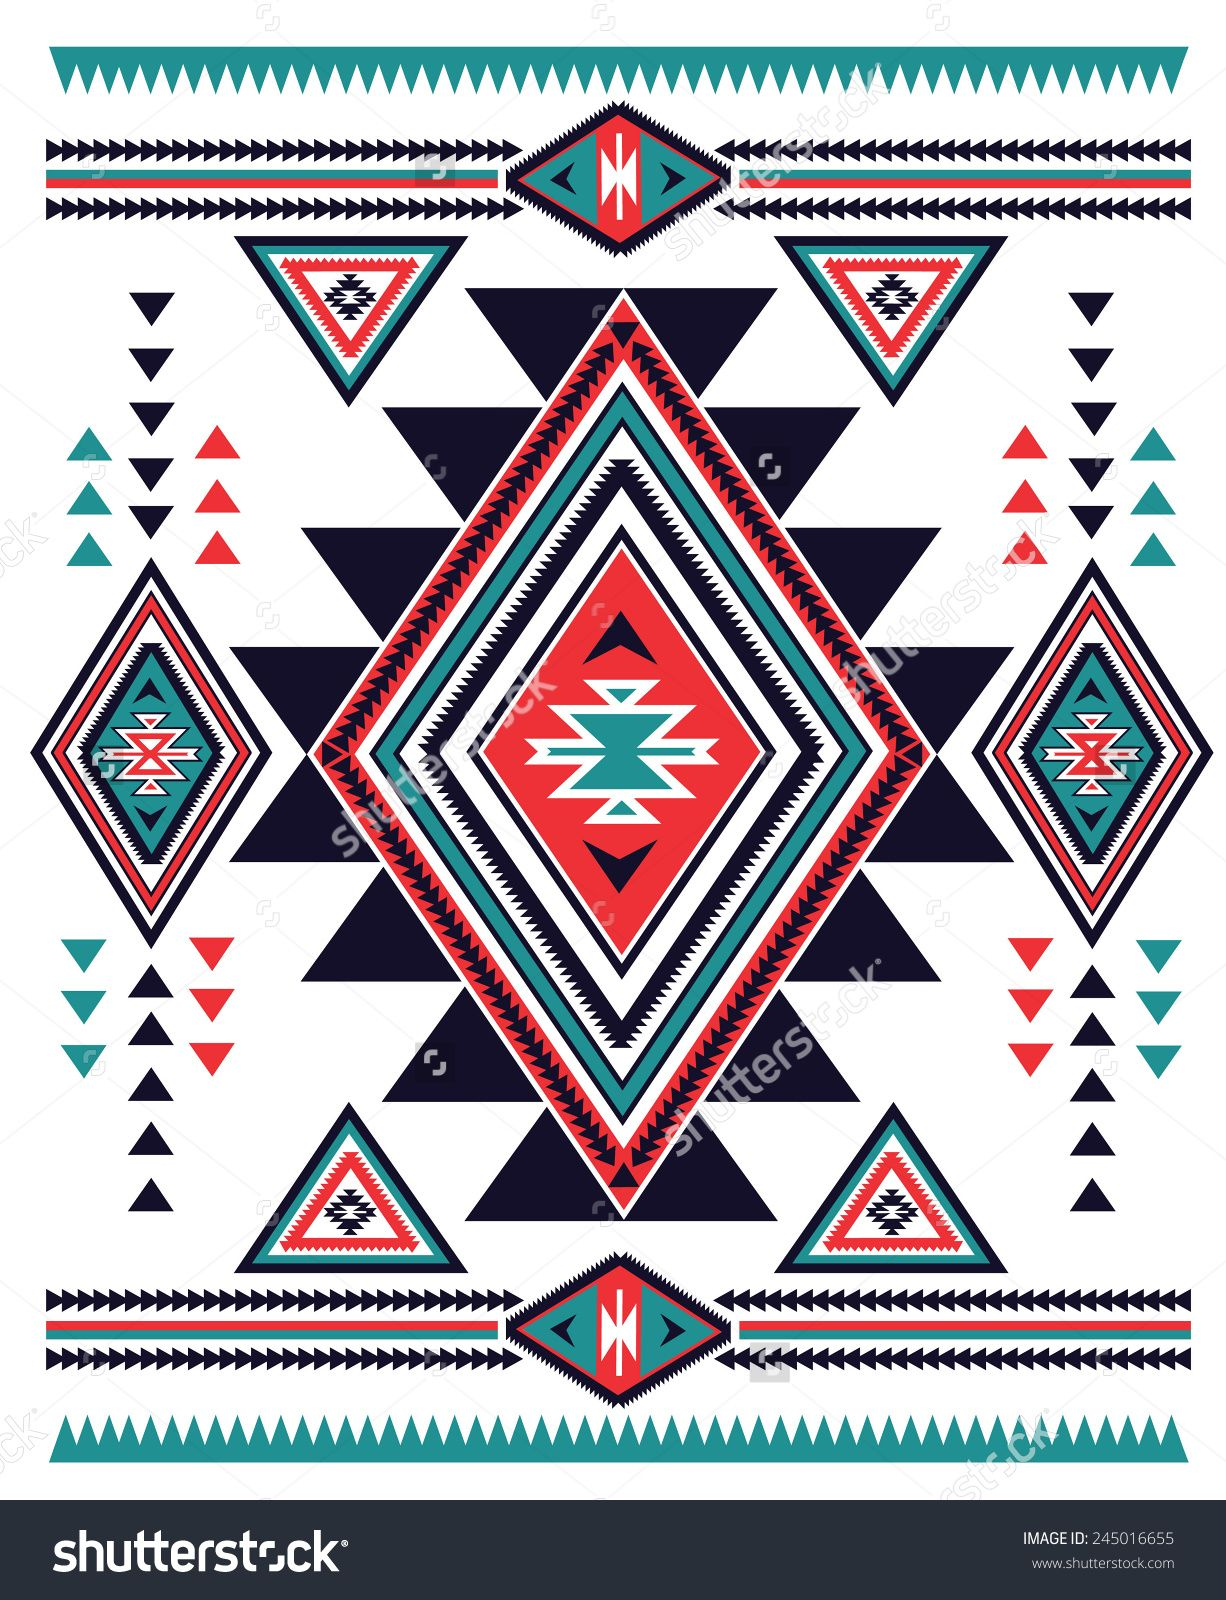 navajo designs patterns. Navajo Aztec Big Pattern Vector Illustration - 245016655 : Shutterstock Designs Patterns S